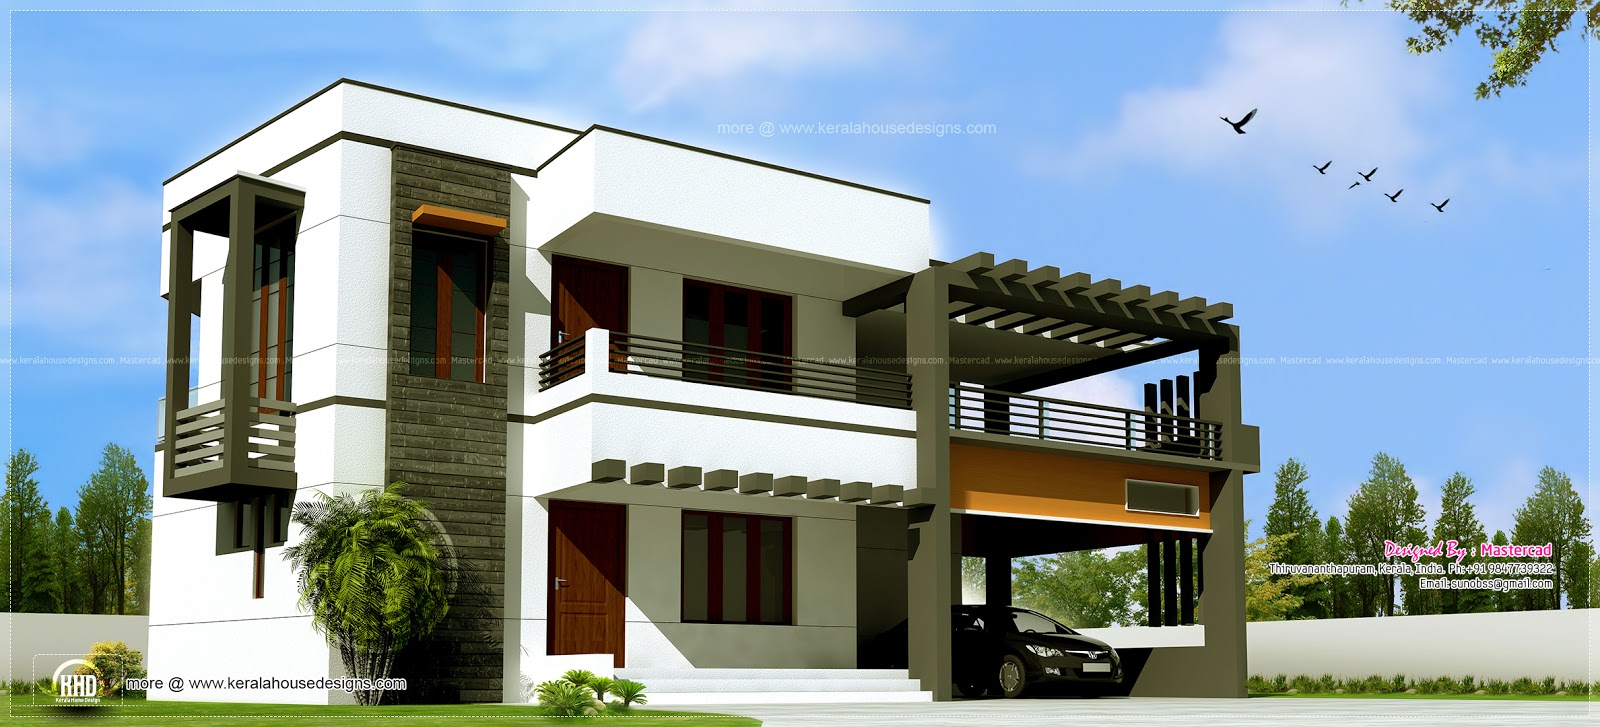 3012 contemporary house house design plans Modern square house